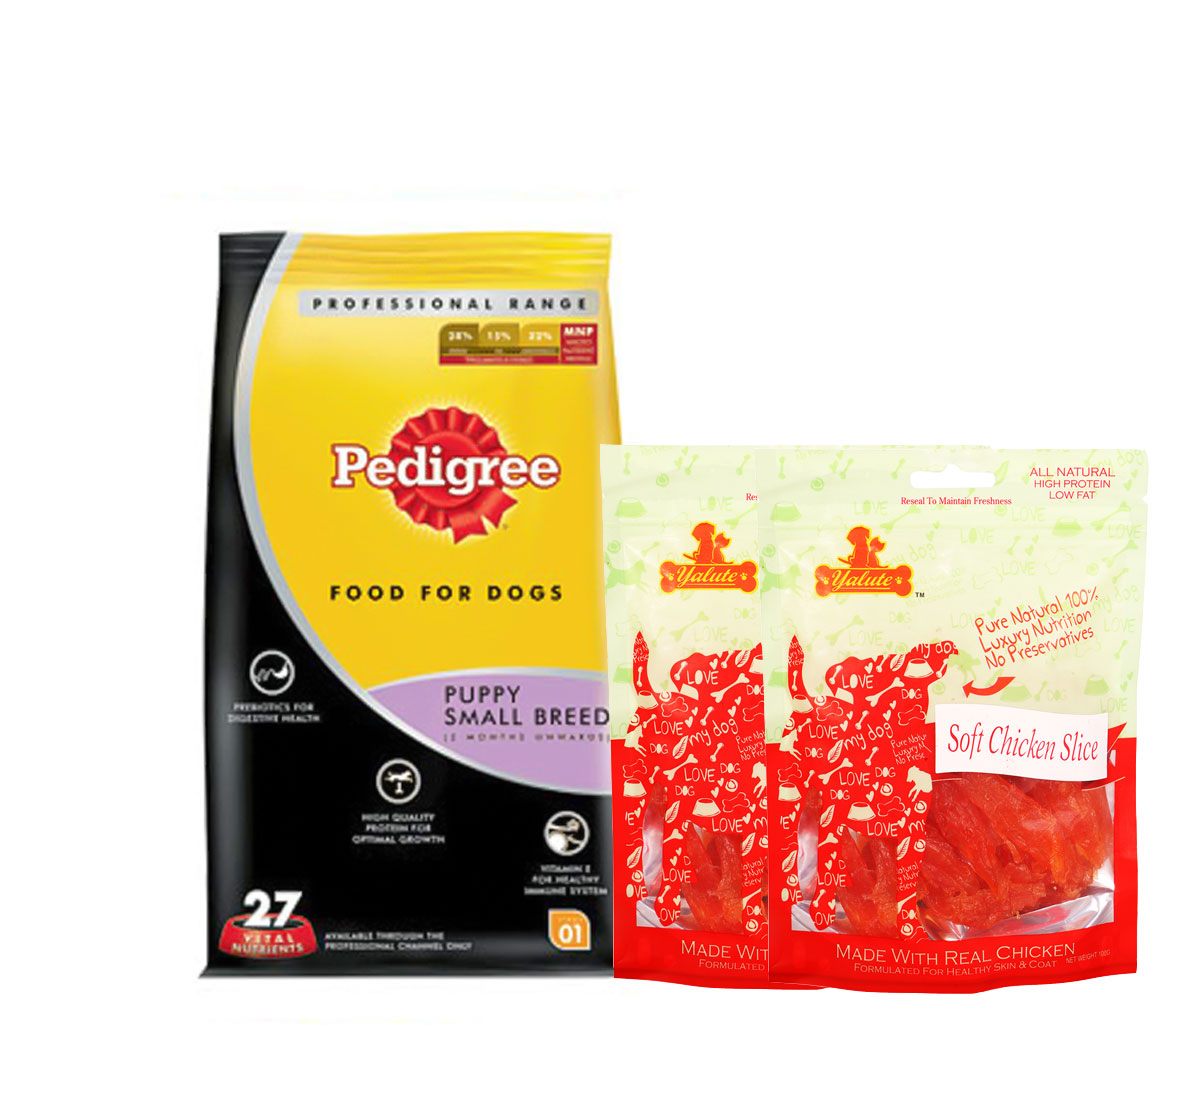 Pedigree Dog Food Puppy Small Breed Professional - 3 Kg  With Chicken Slices